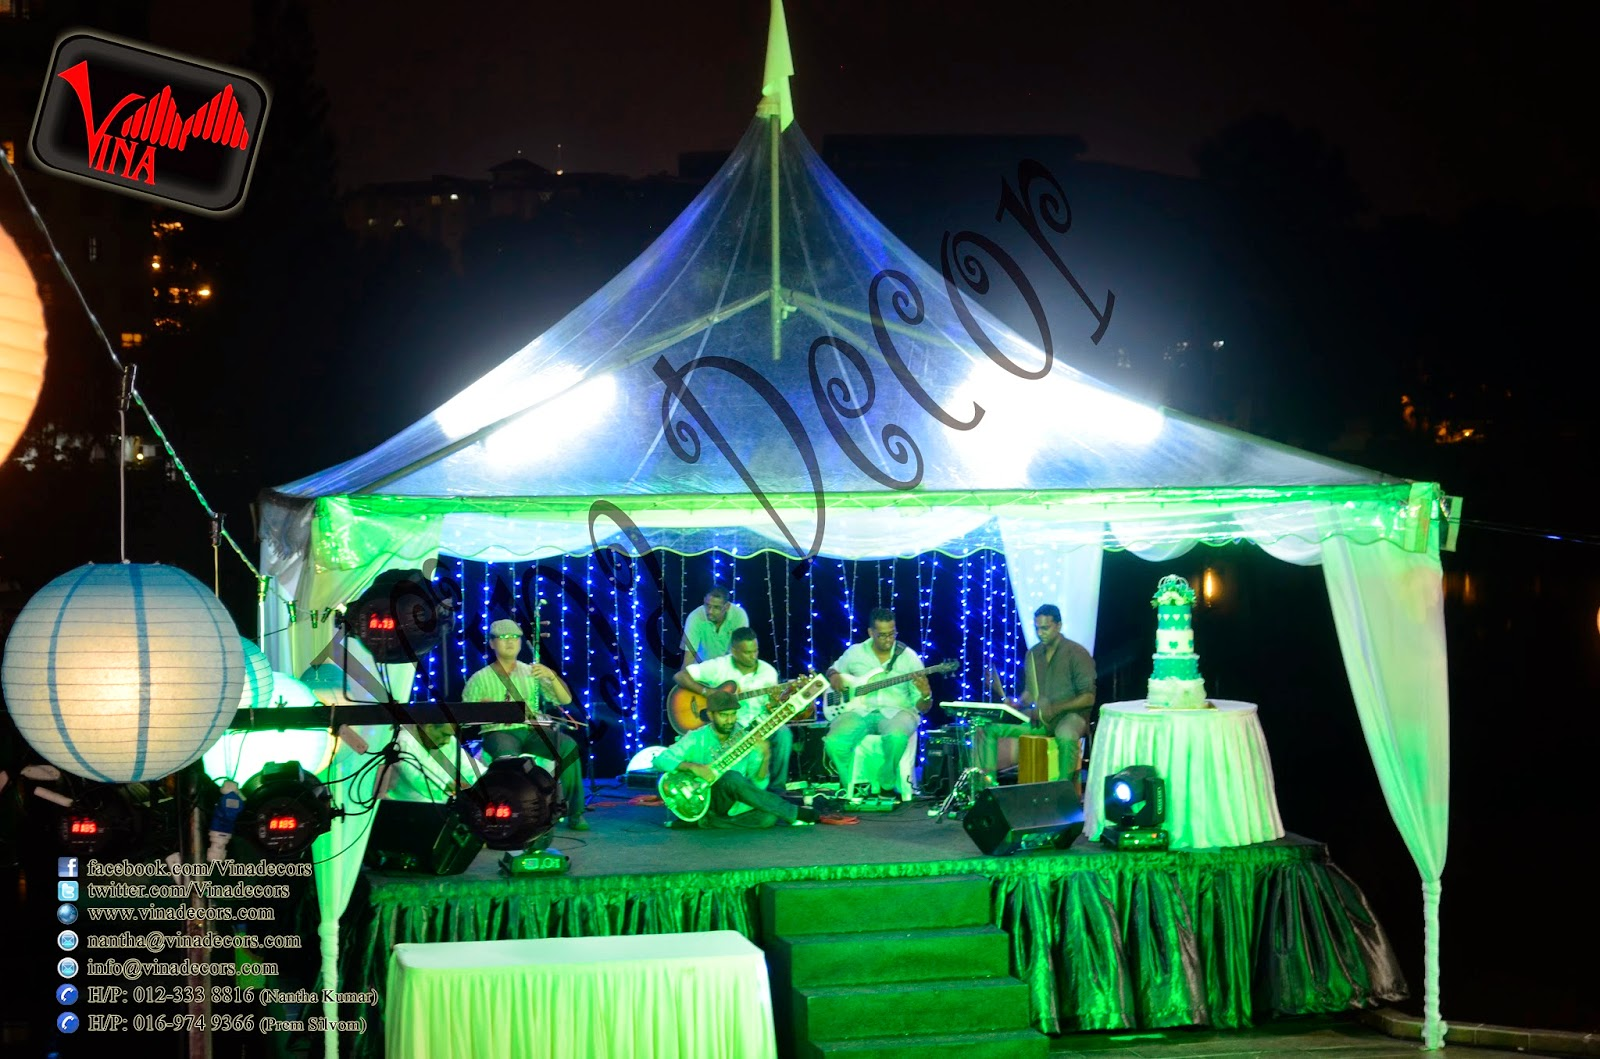 Flamingo Hotel - Garden Wedding Dinner at Flamingo Hotel, Ampang on 31/08/2014 by Vina Canopy & Decor (Marky Tent, Canopy, Table, Chair and Paper Lantern Decor)